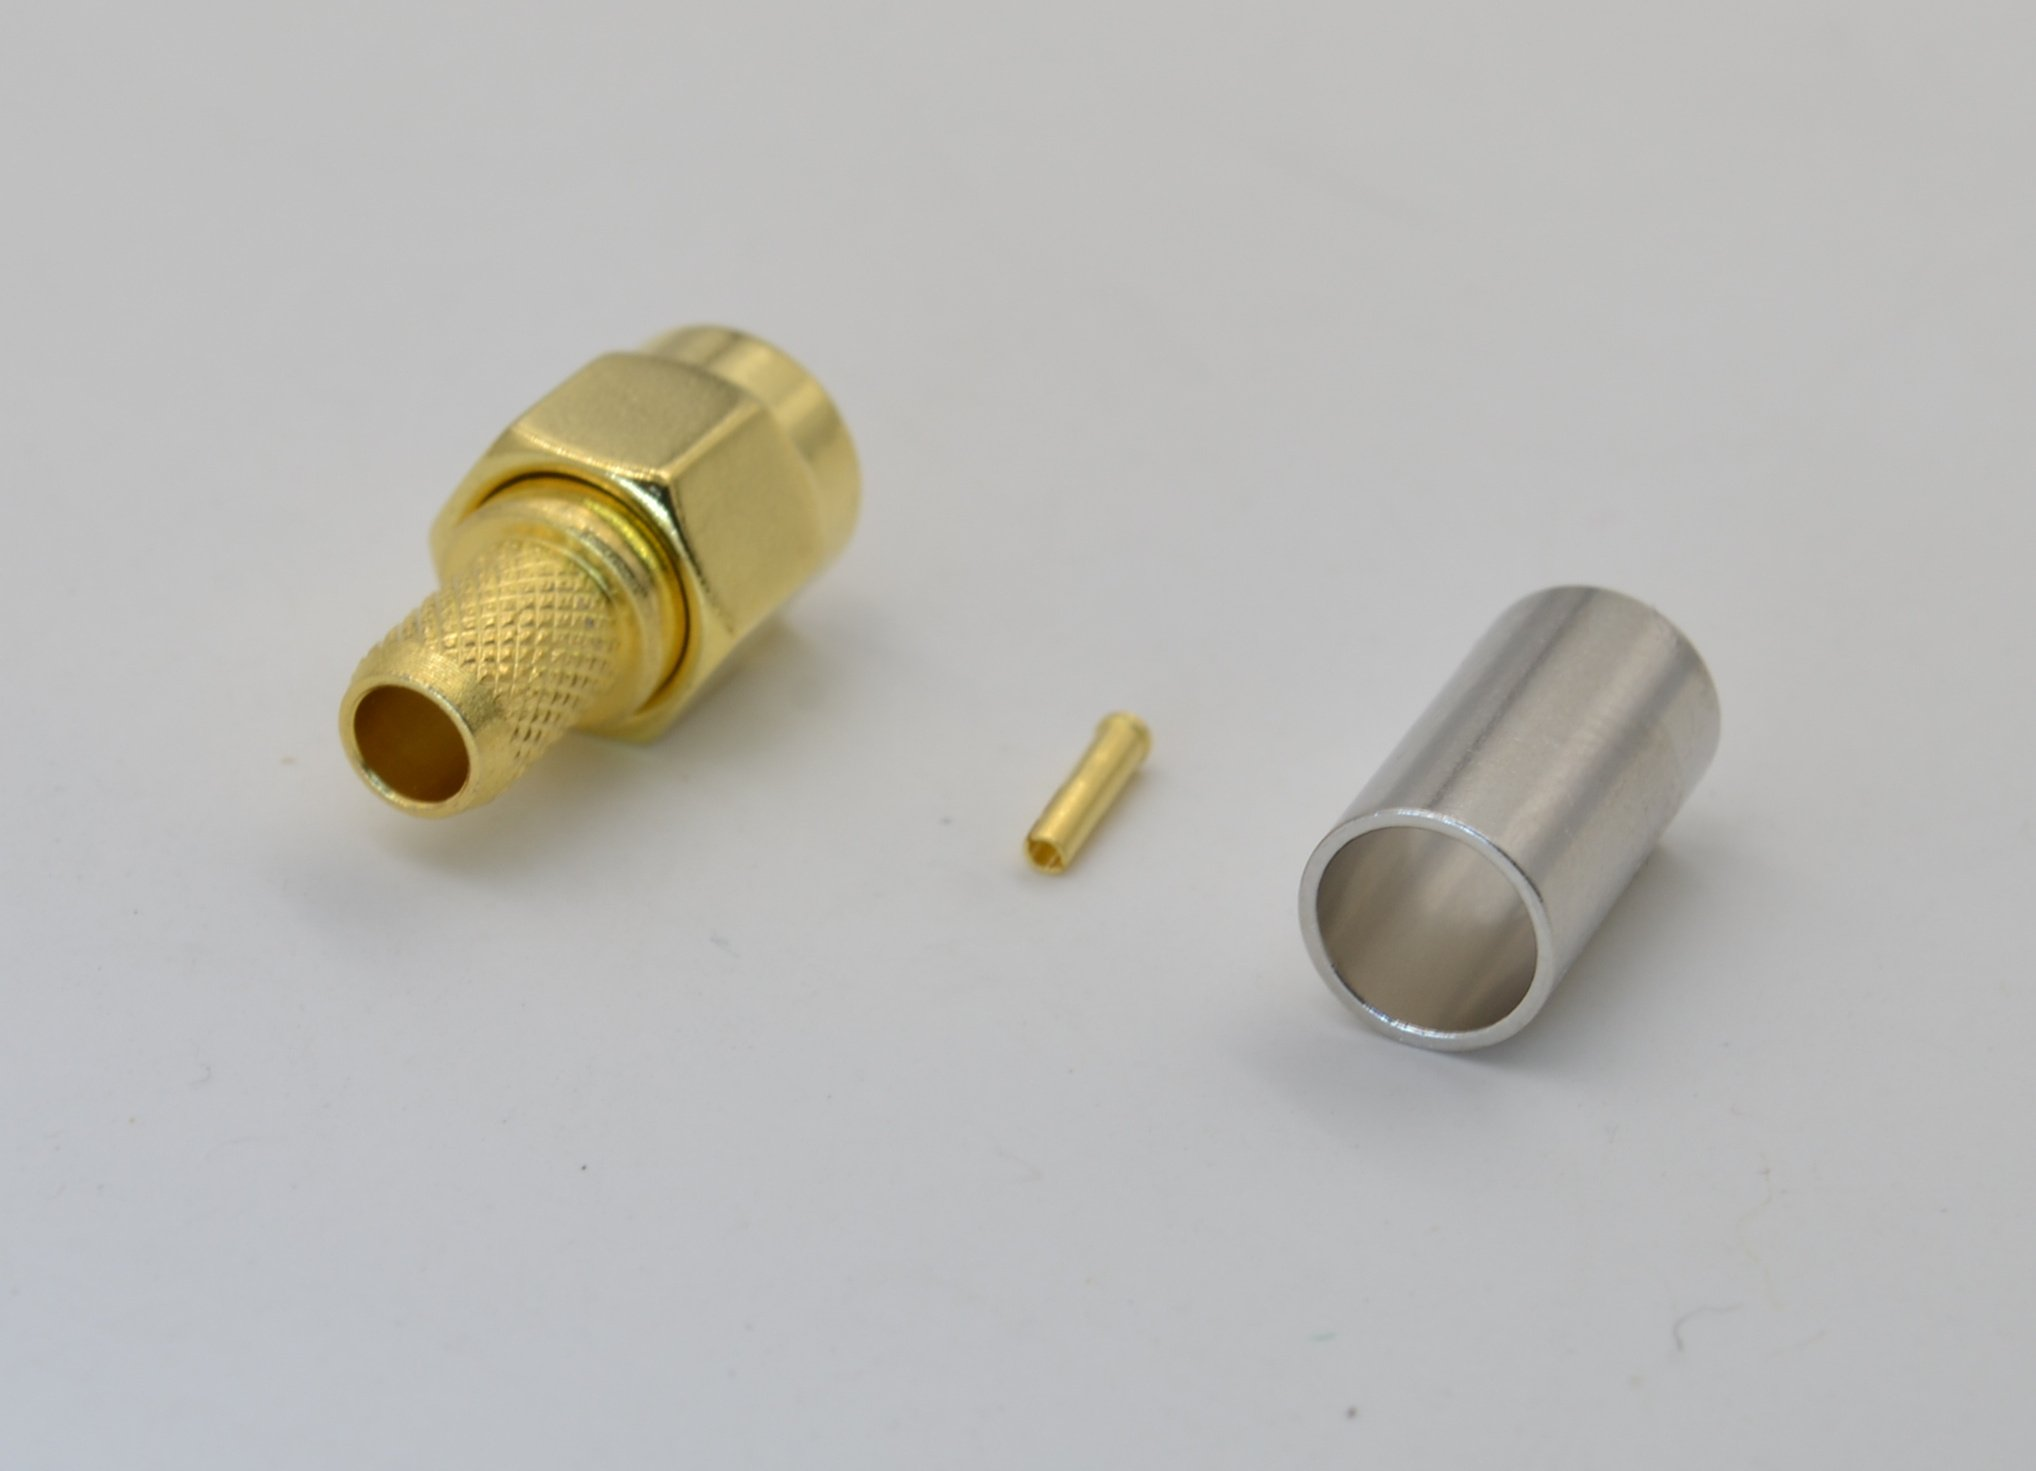 10pcs RP-SMA male (Inner hole) crimp adapter for RG58/RG142/LMR192/RG223/RF195/RG400 type cables High Value pure copper